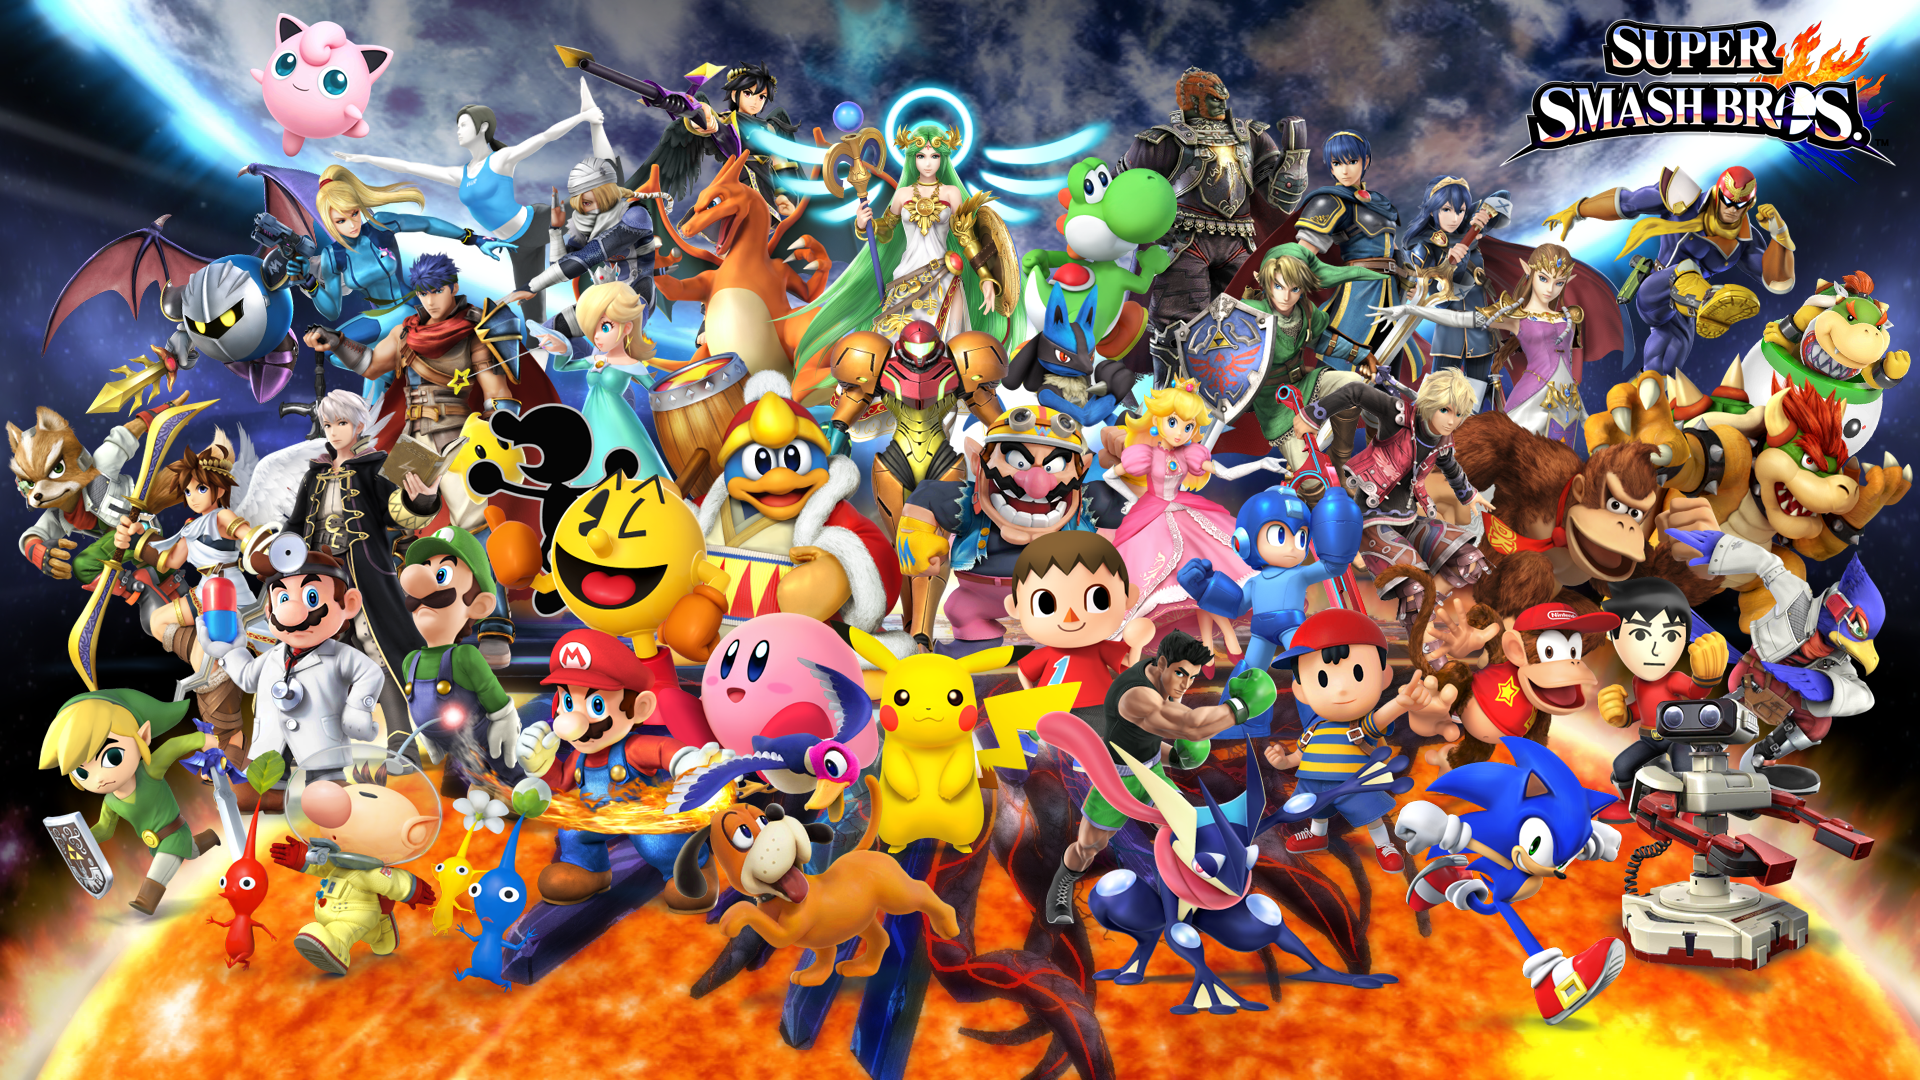 how to get super smash bros on pc